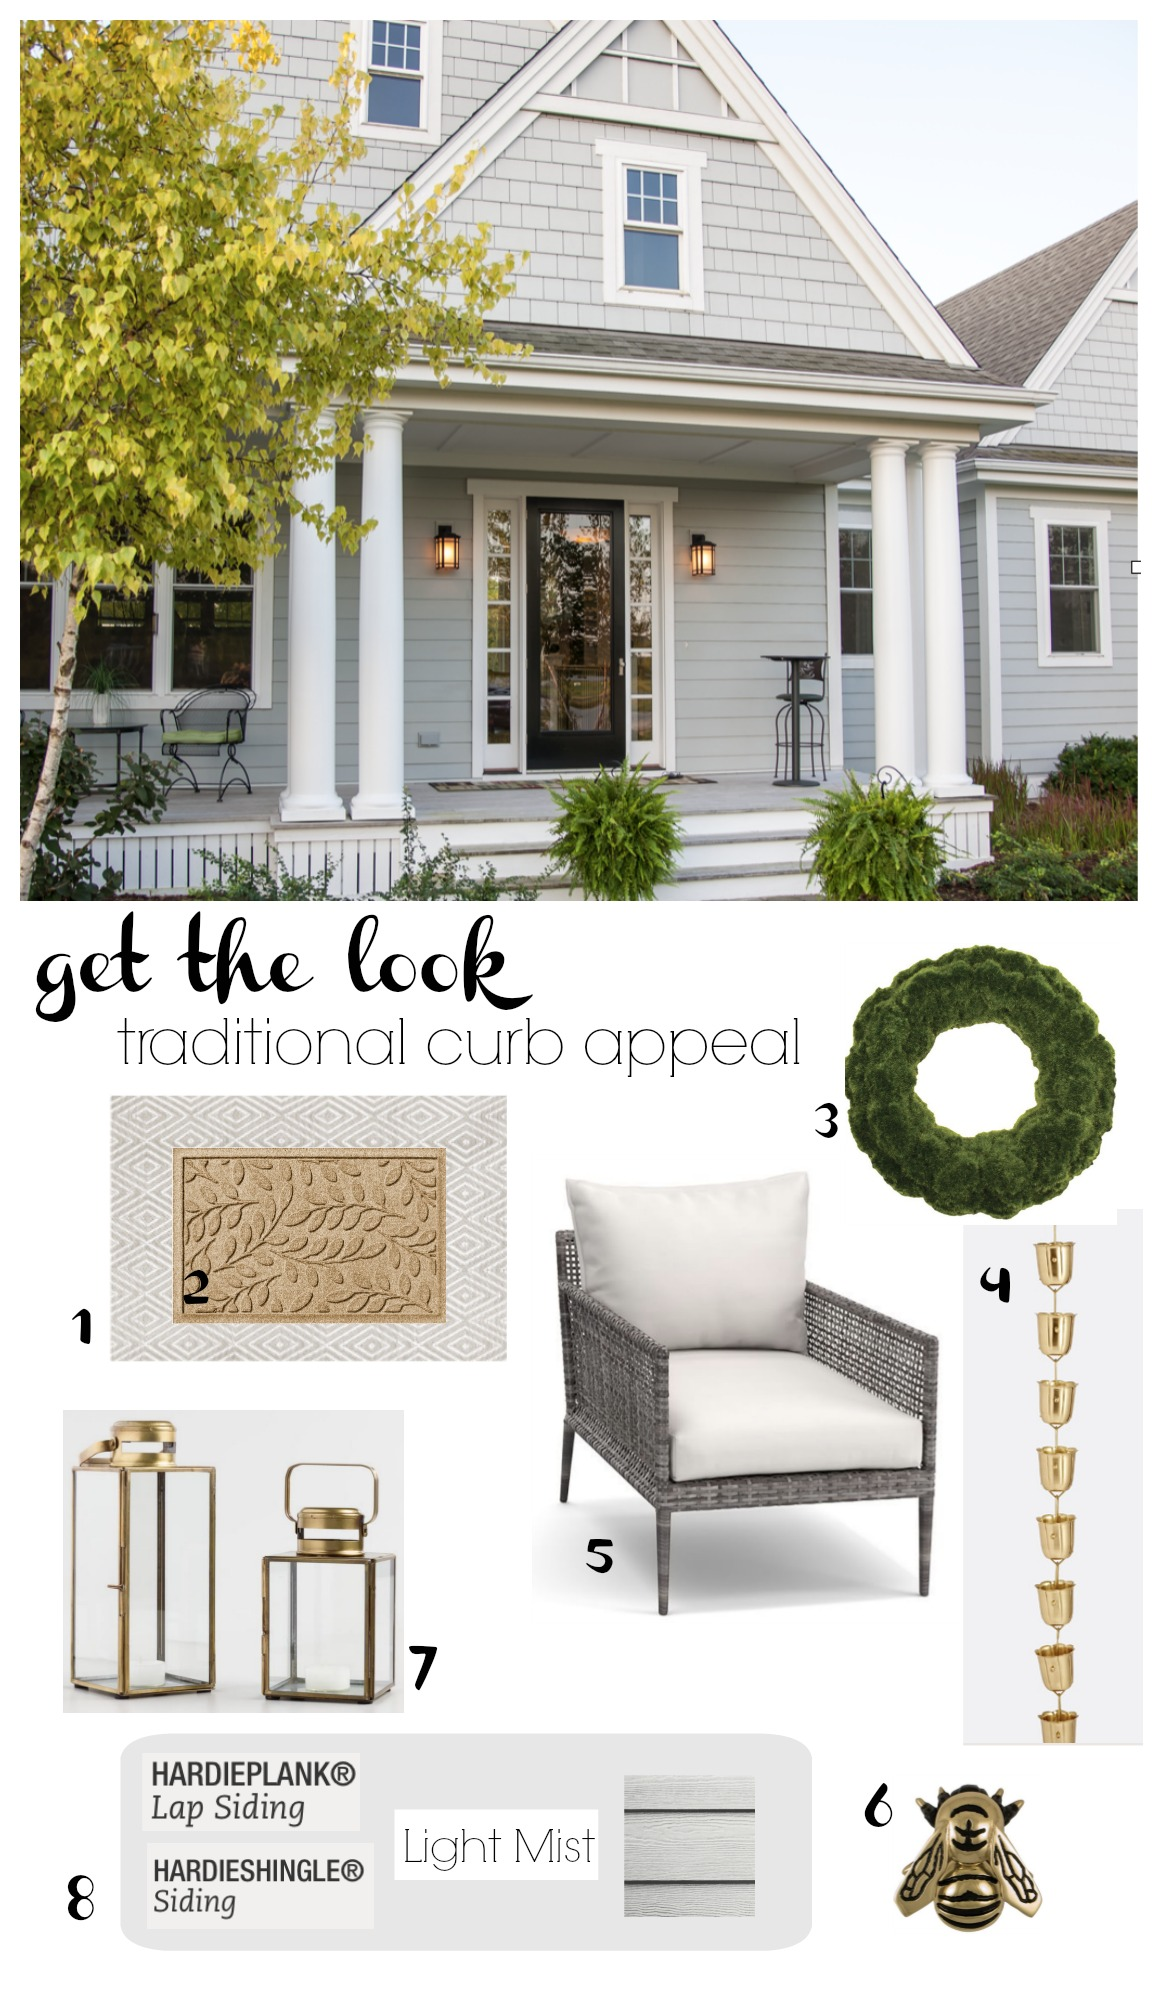 Get the Look- Traditional Curb Appeal- Arctic White